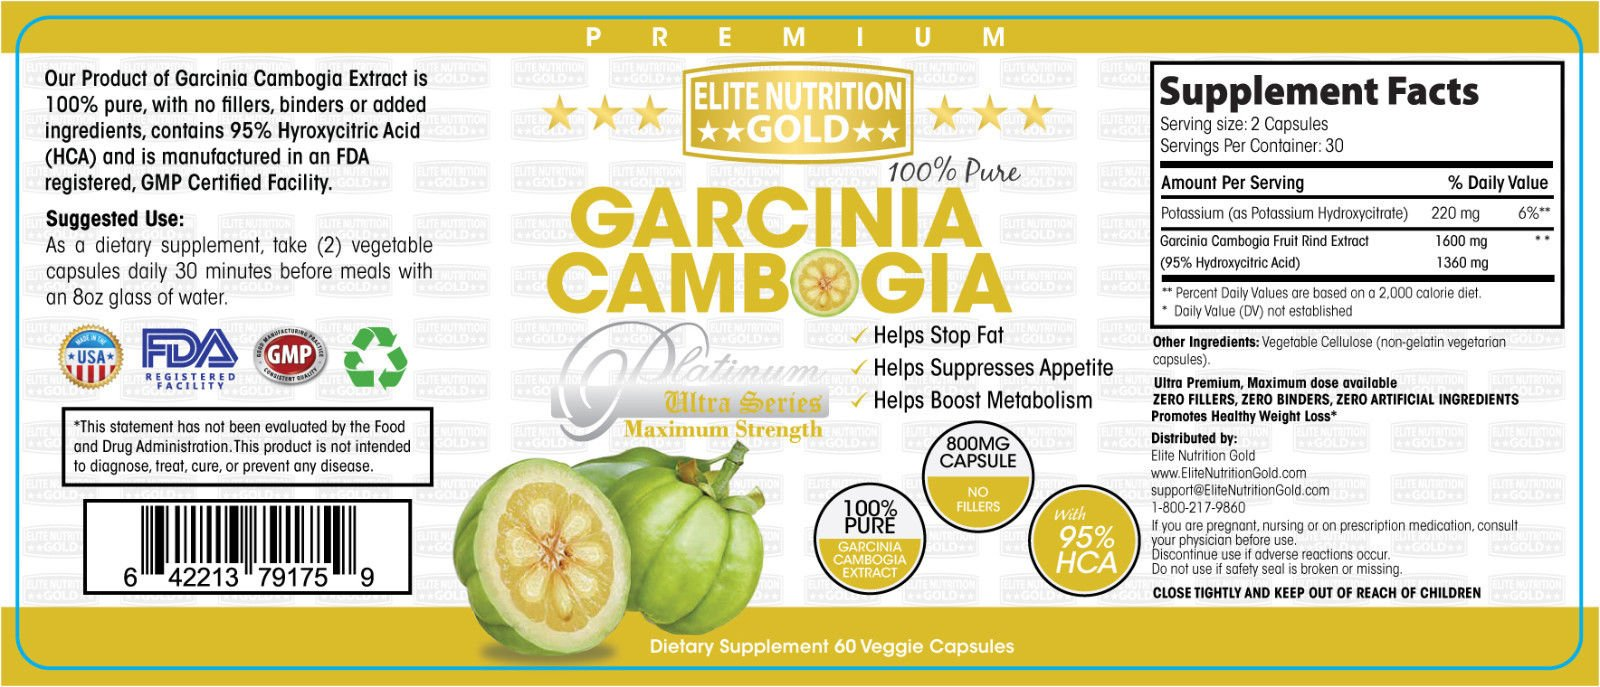 Garcinia Cambogia 100% Pure 1600mg 95% HCA Ultra Livewell USA by Elite Nutrition Gold